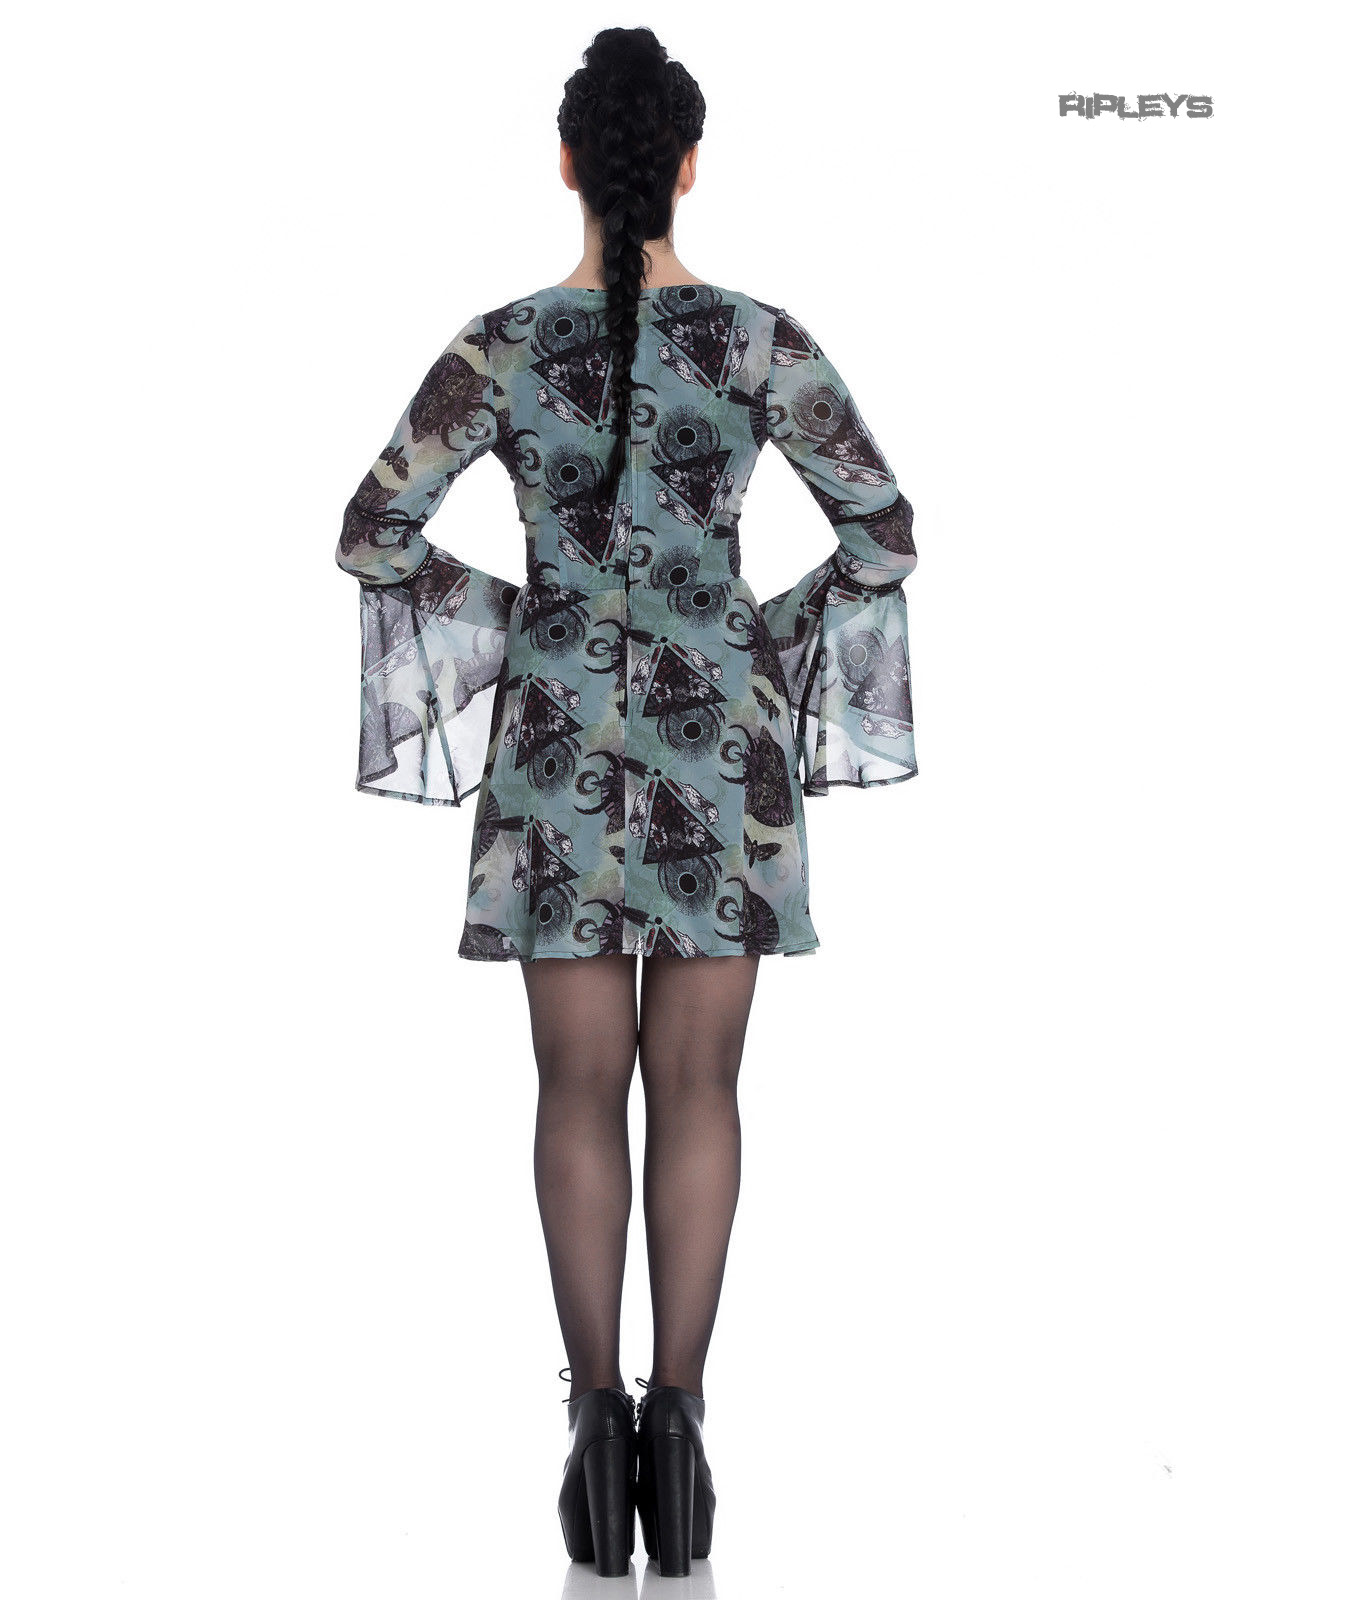 Hell-Bunny-Alchemy-Goth-Floaty-Witch-Mini-Dress-AFTER-DEATH-Teal-Green-All-Sizes thumbnail 24